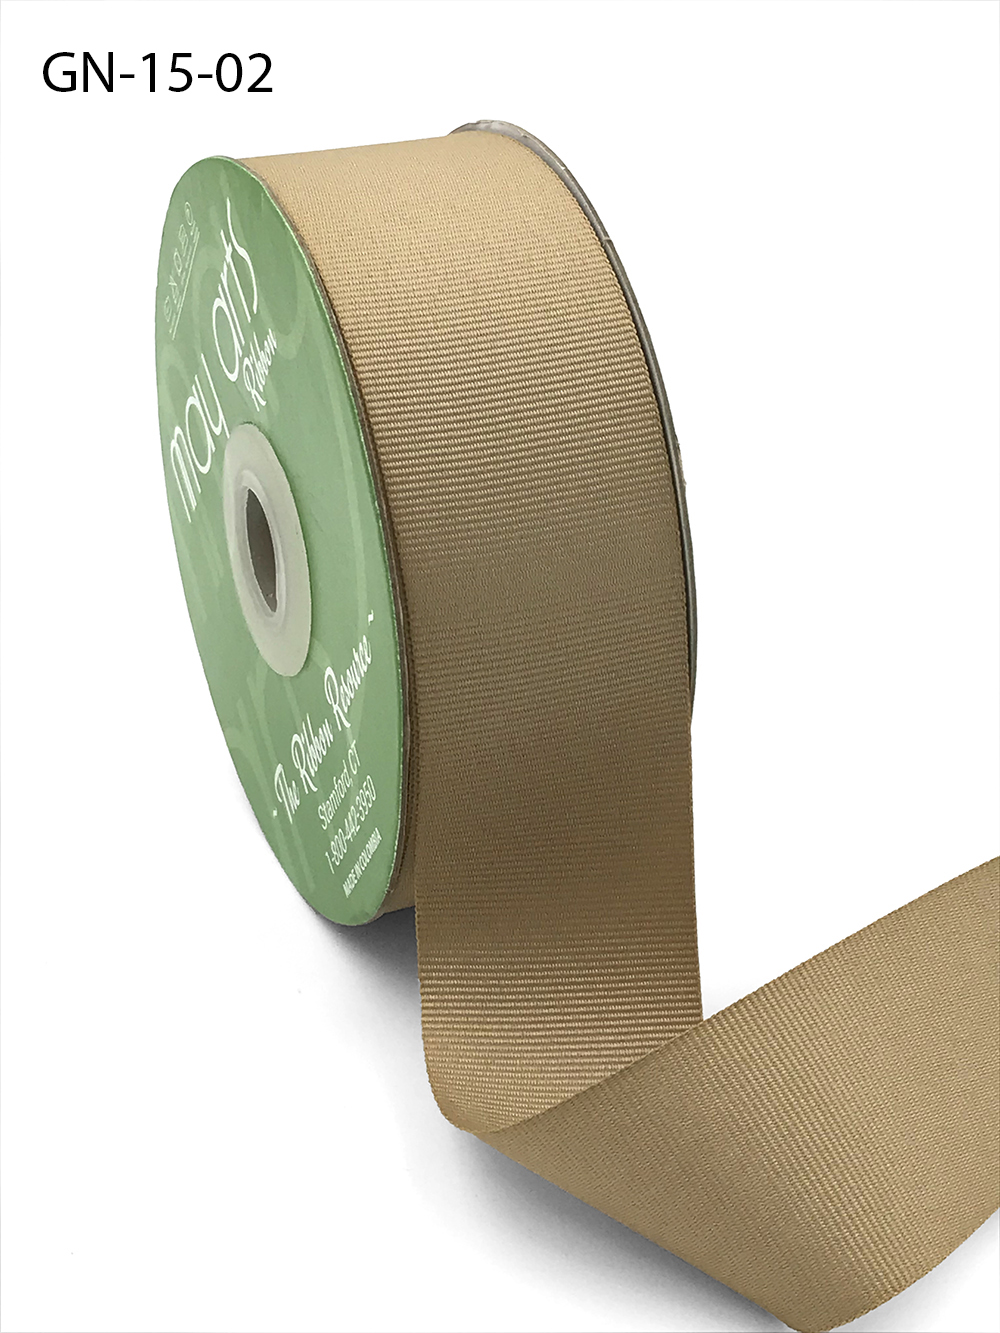 1.5 Inch Light-Weight Flat Grosgrain Ribbon with Woven Edge - GN-15-02 Champagne